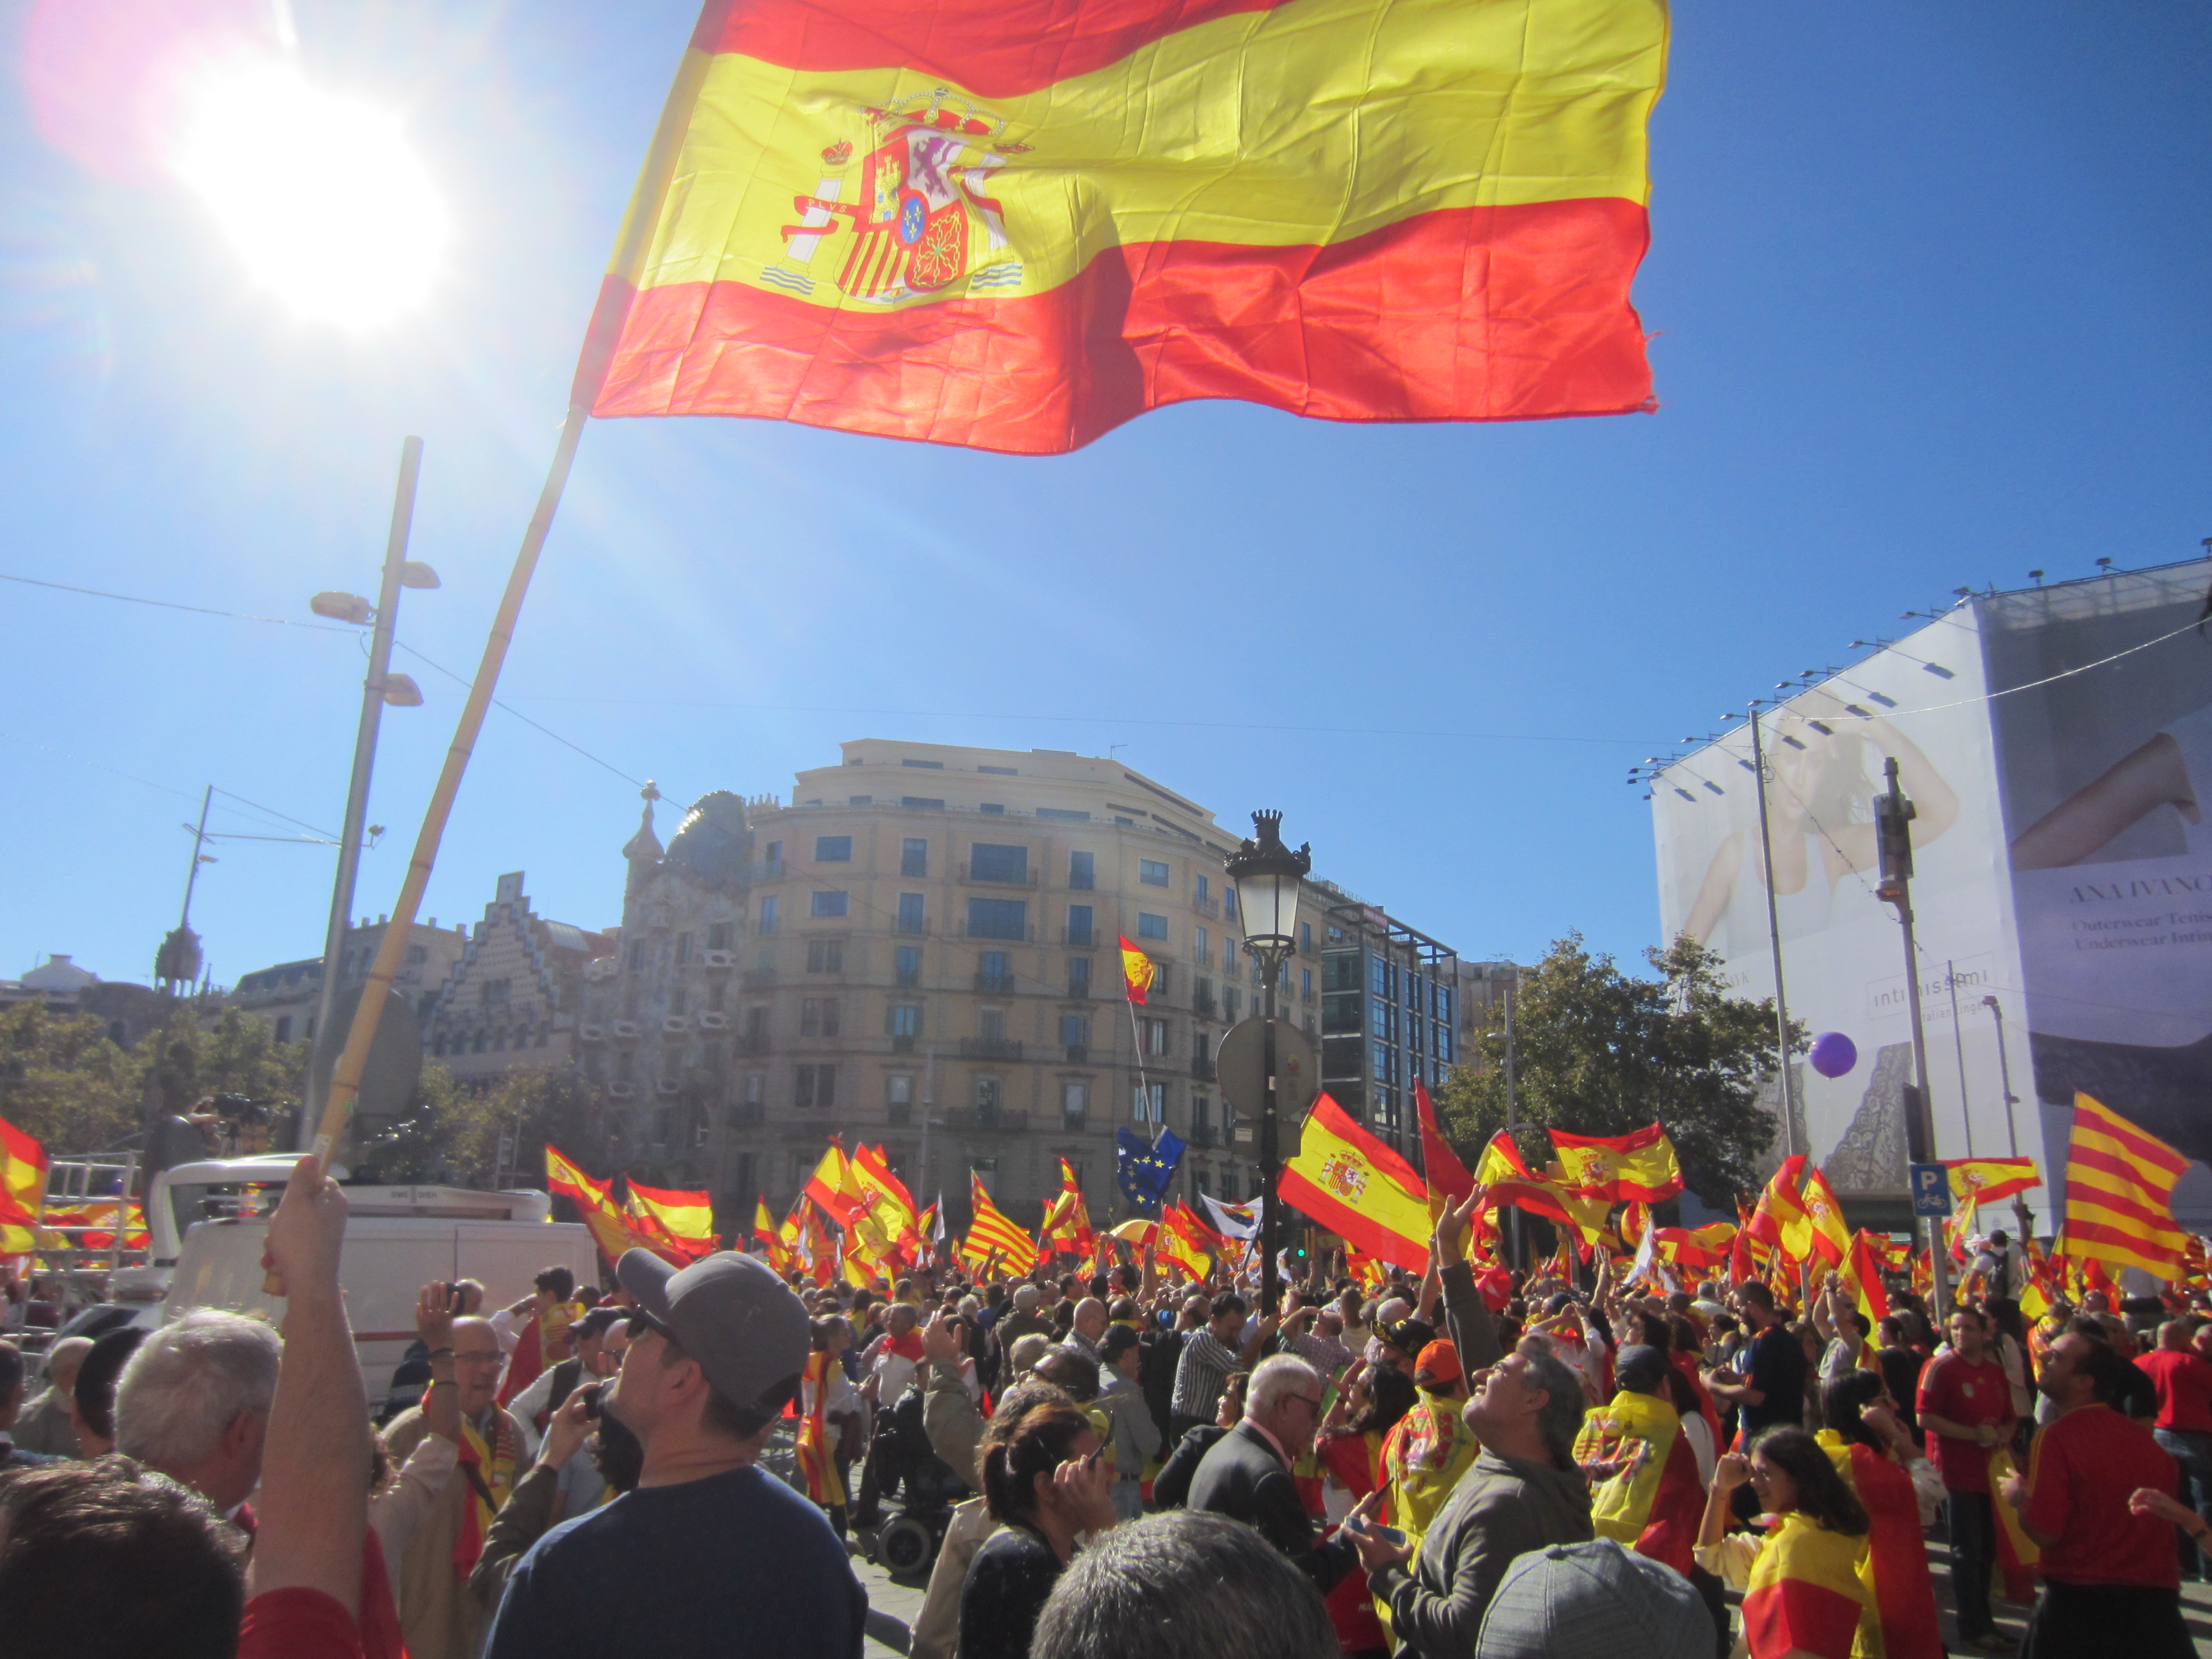 Spaniards Divided Over Catalonian Independence Vote